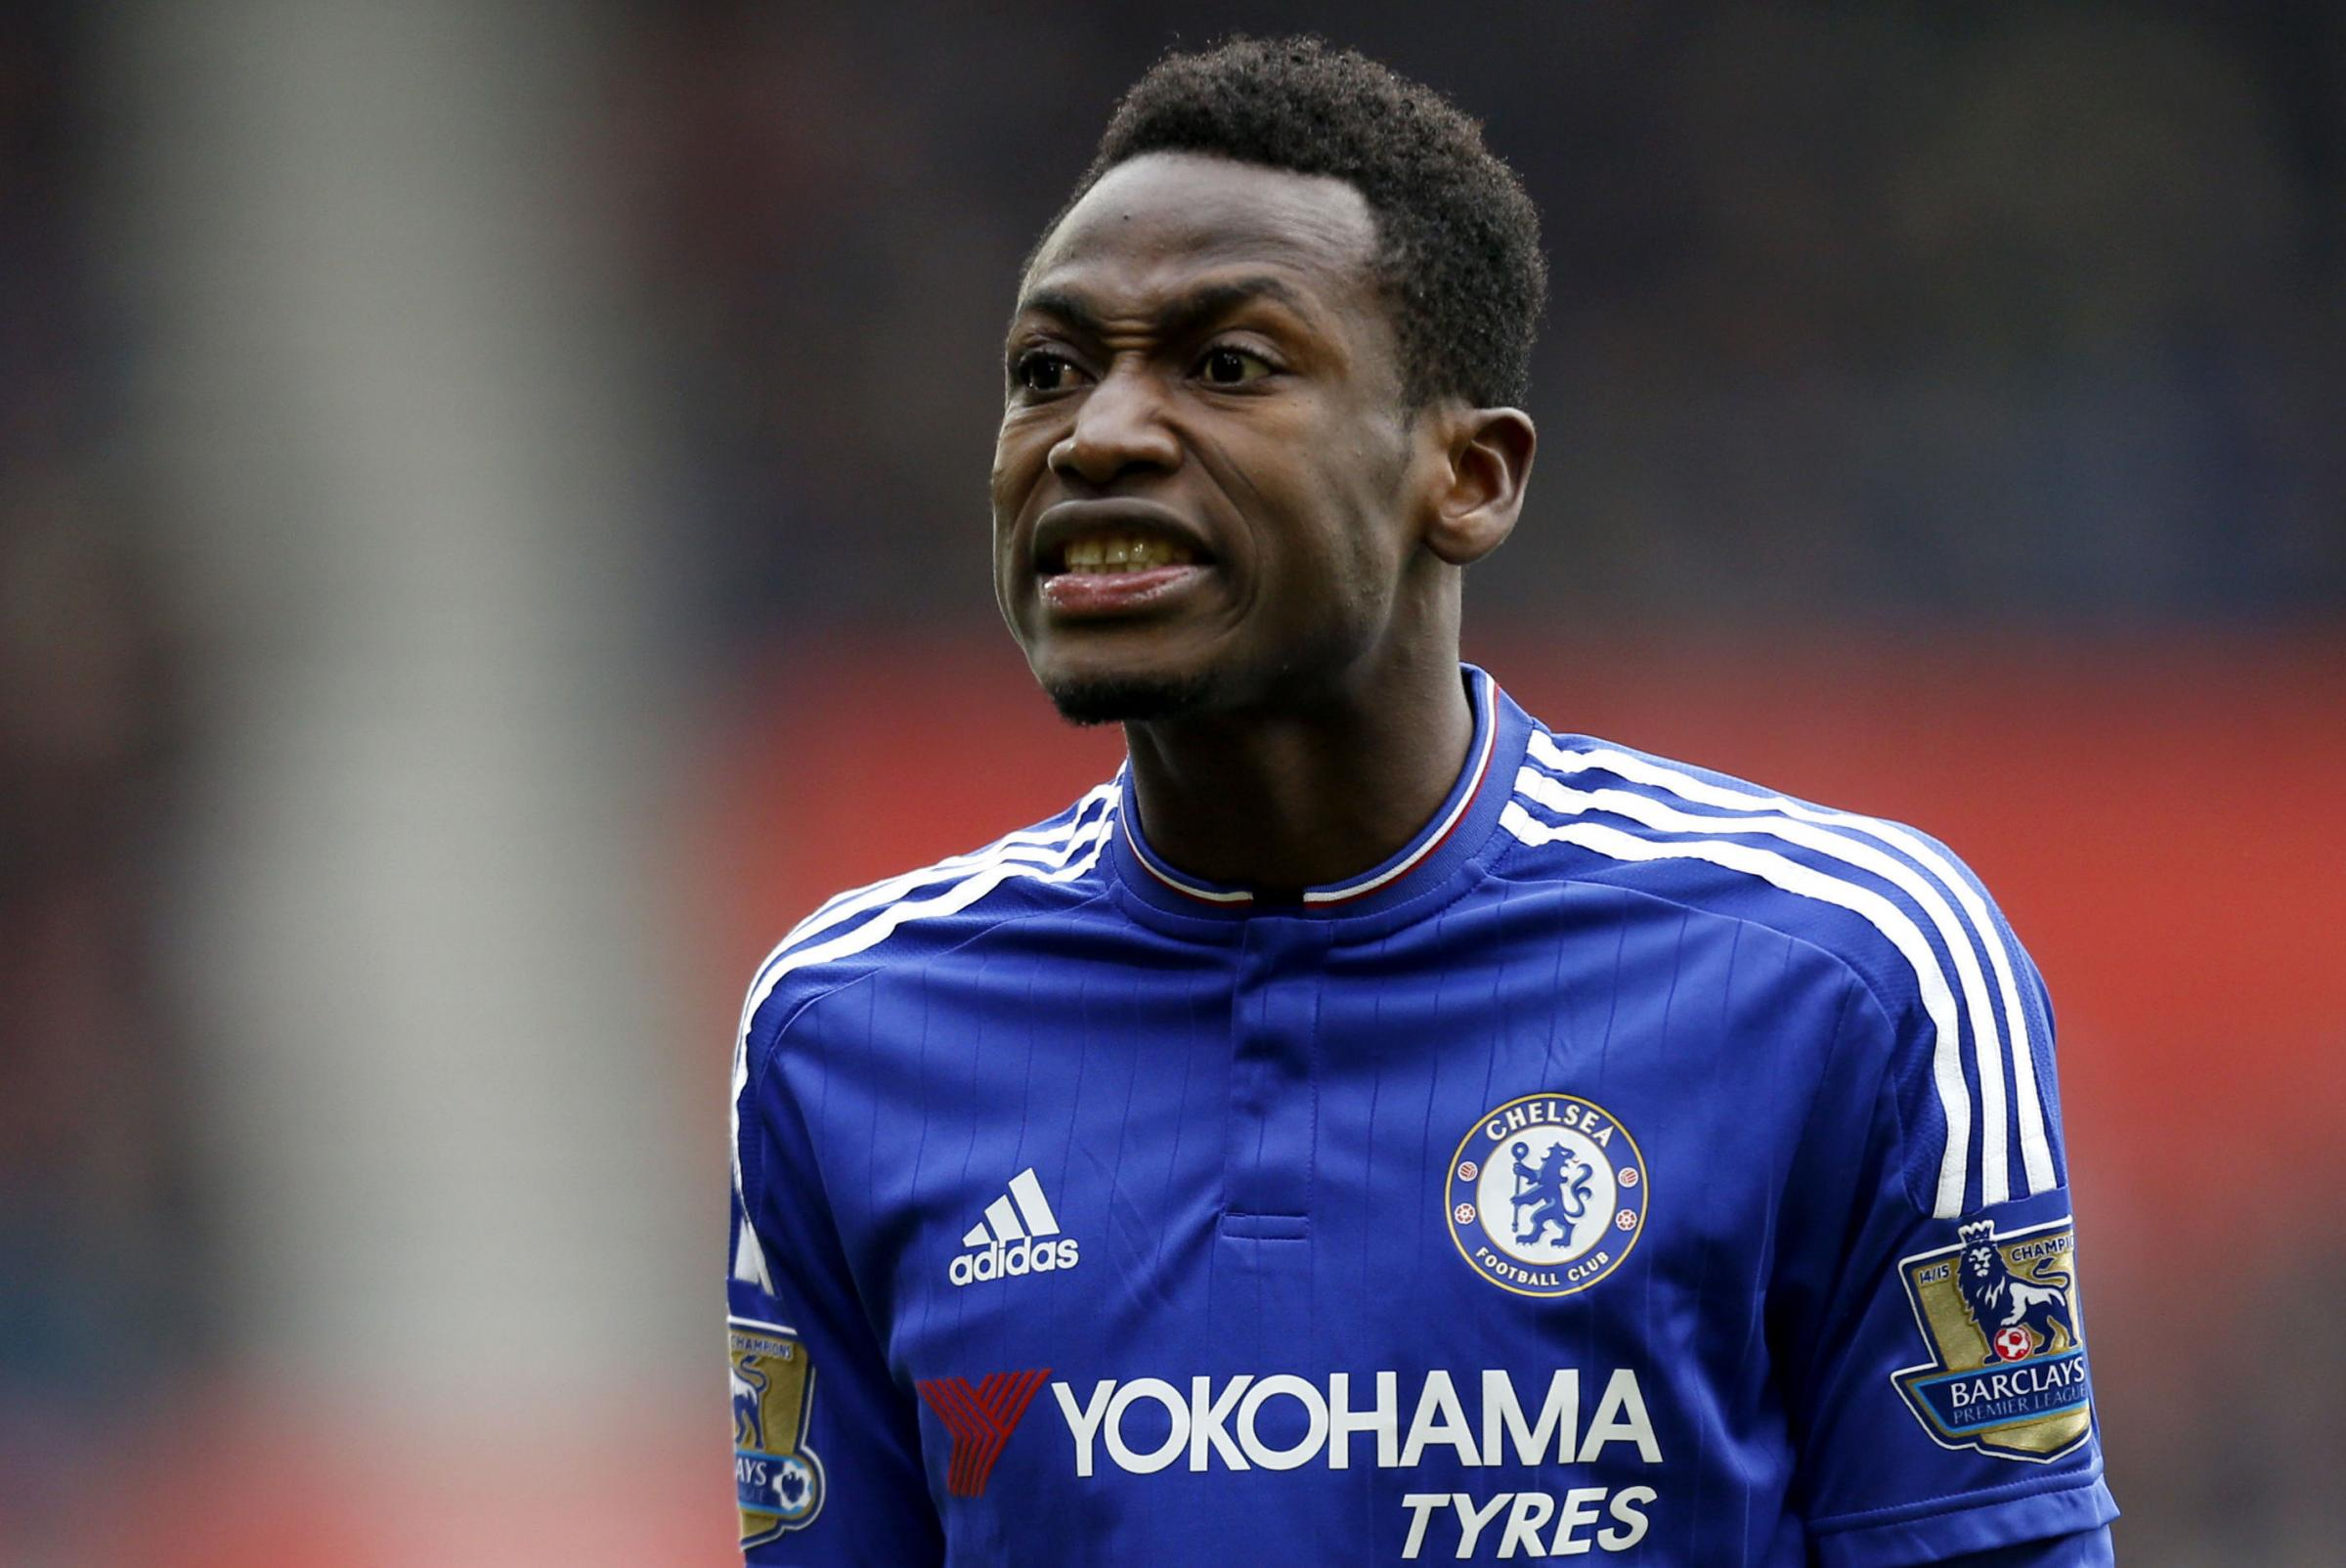 Middlesbrough want to sign Baba Rahman on loan from Chelsea